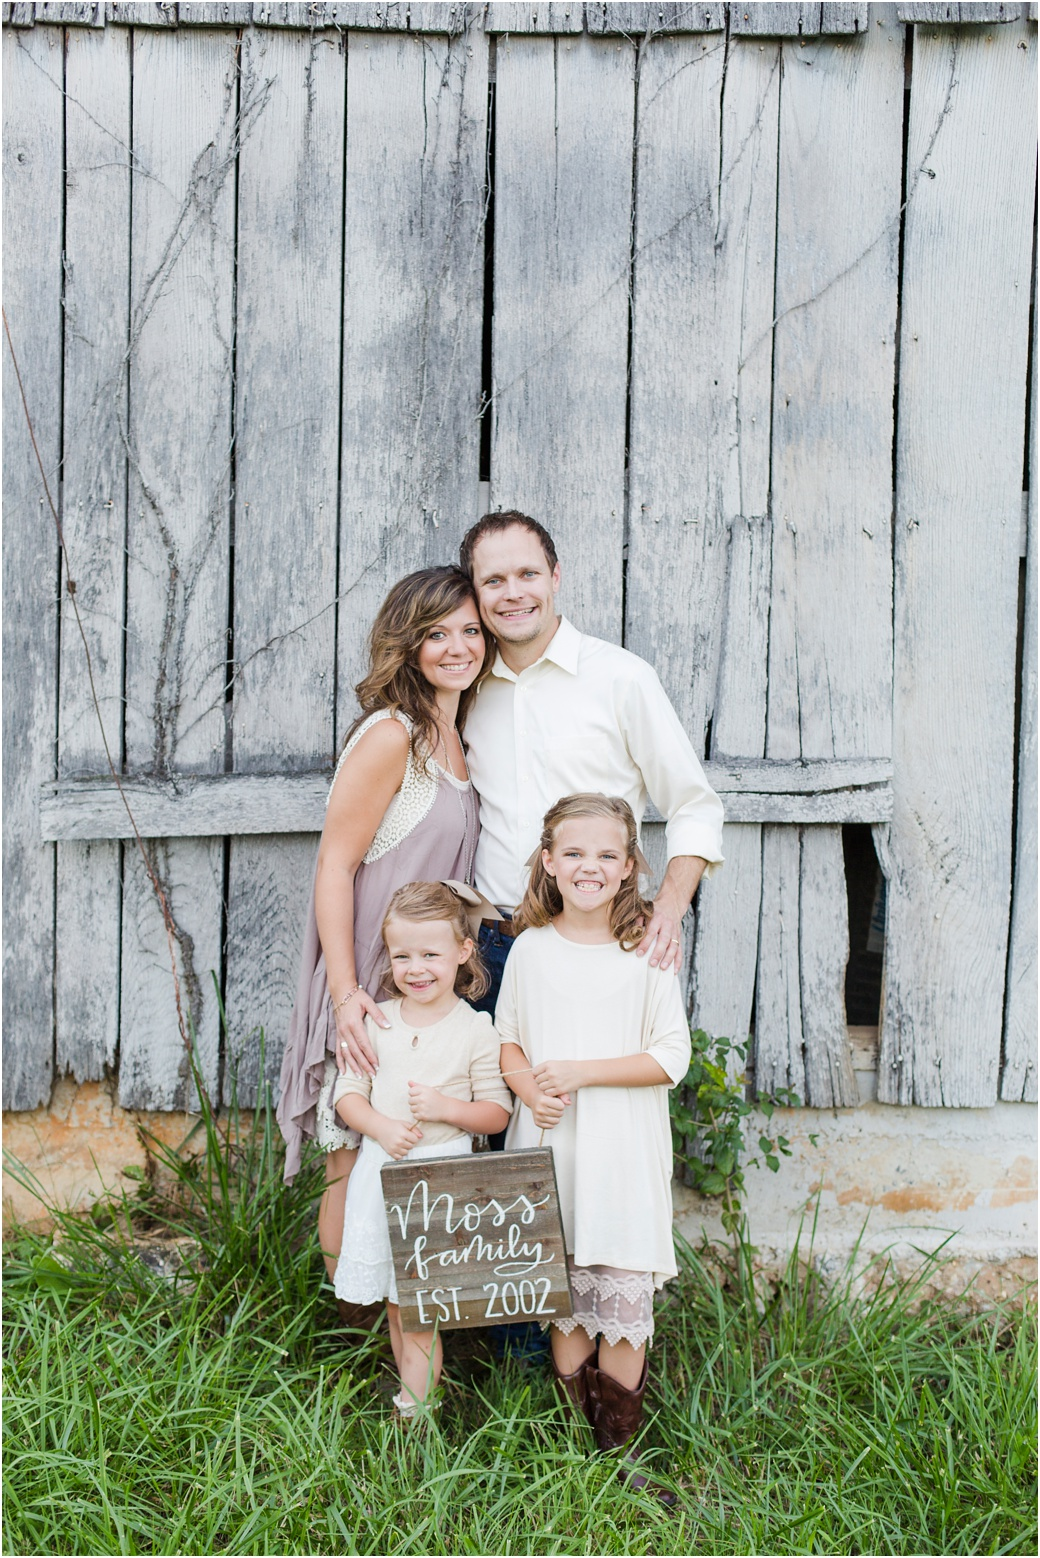 knoxvillefamilyphotographer13.jpg